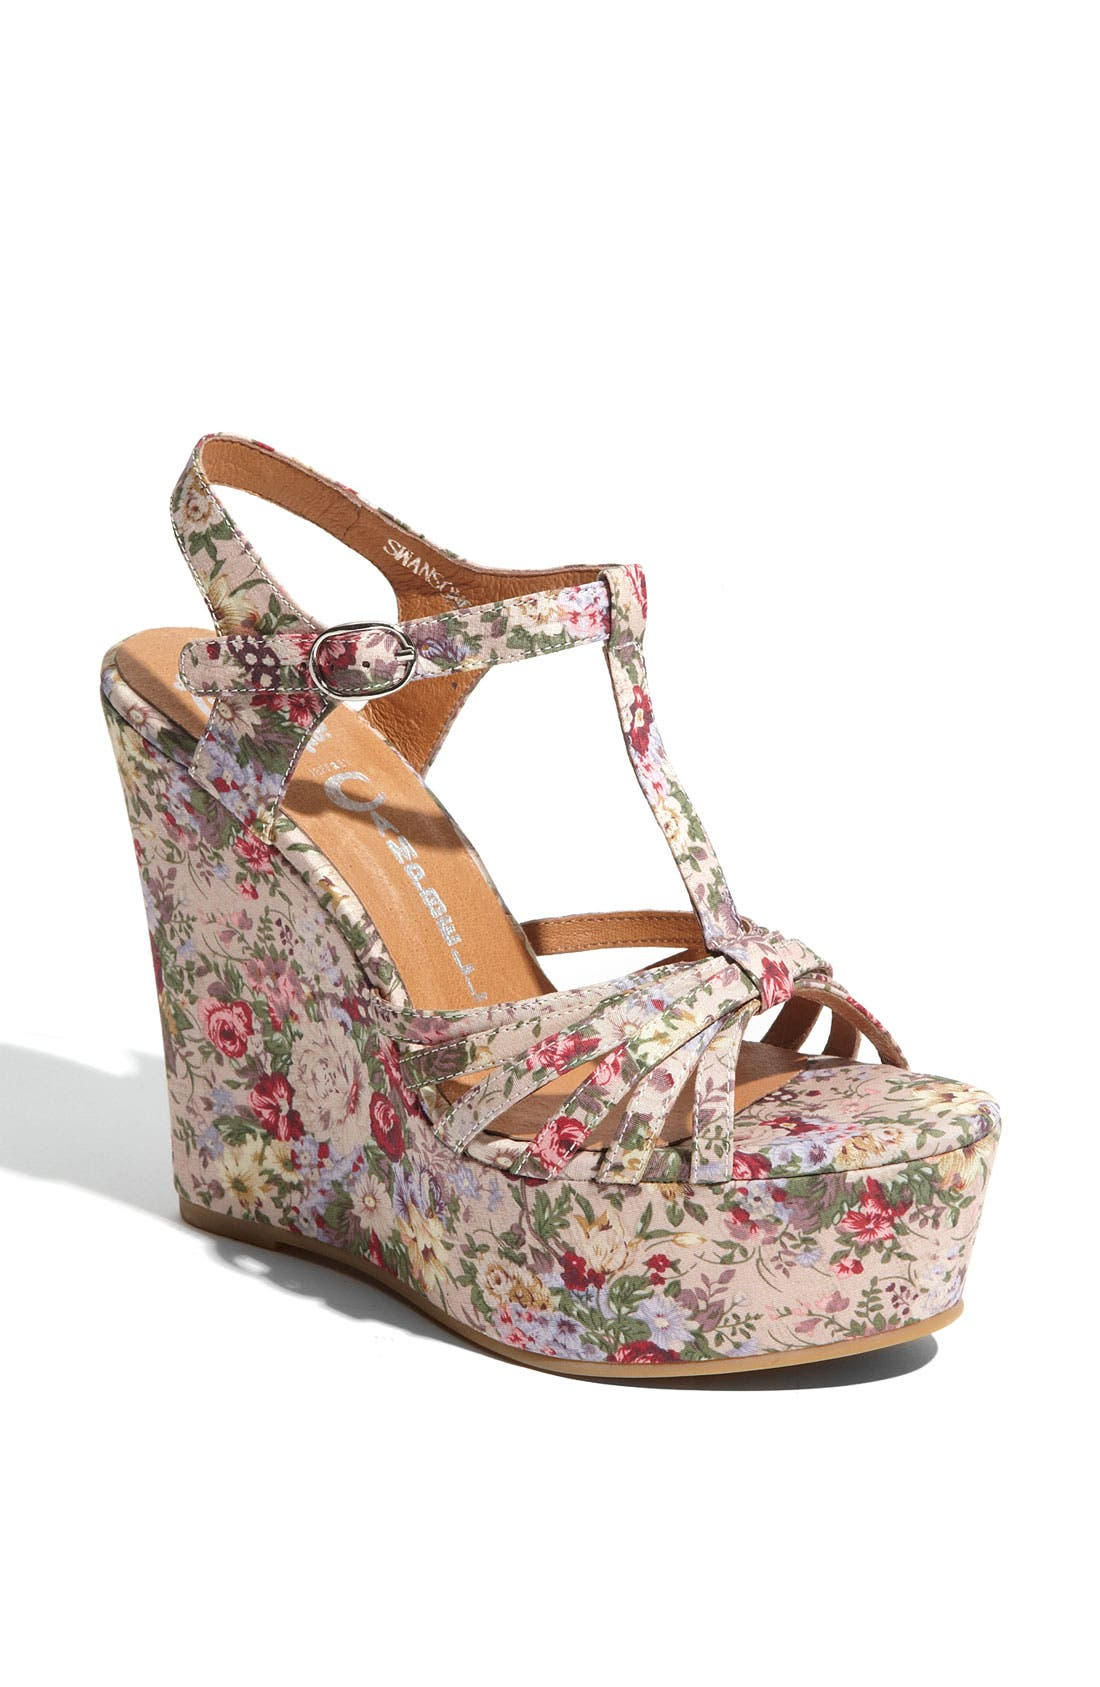 Main Image - Jeffrey Campbell 'Swansong' Wedge Sandal